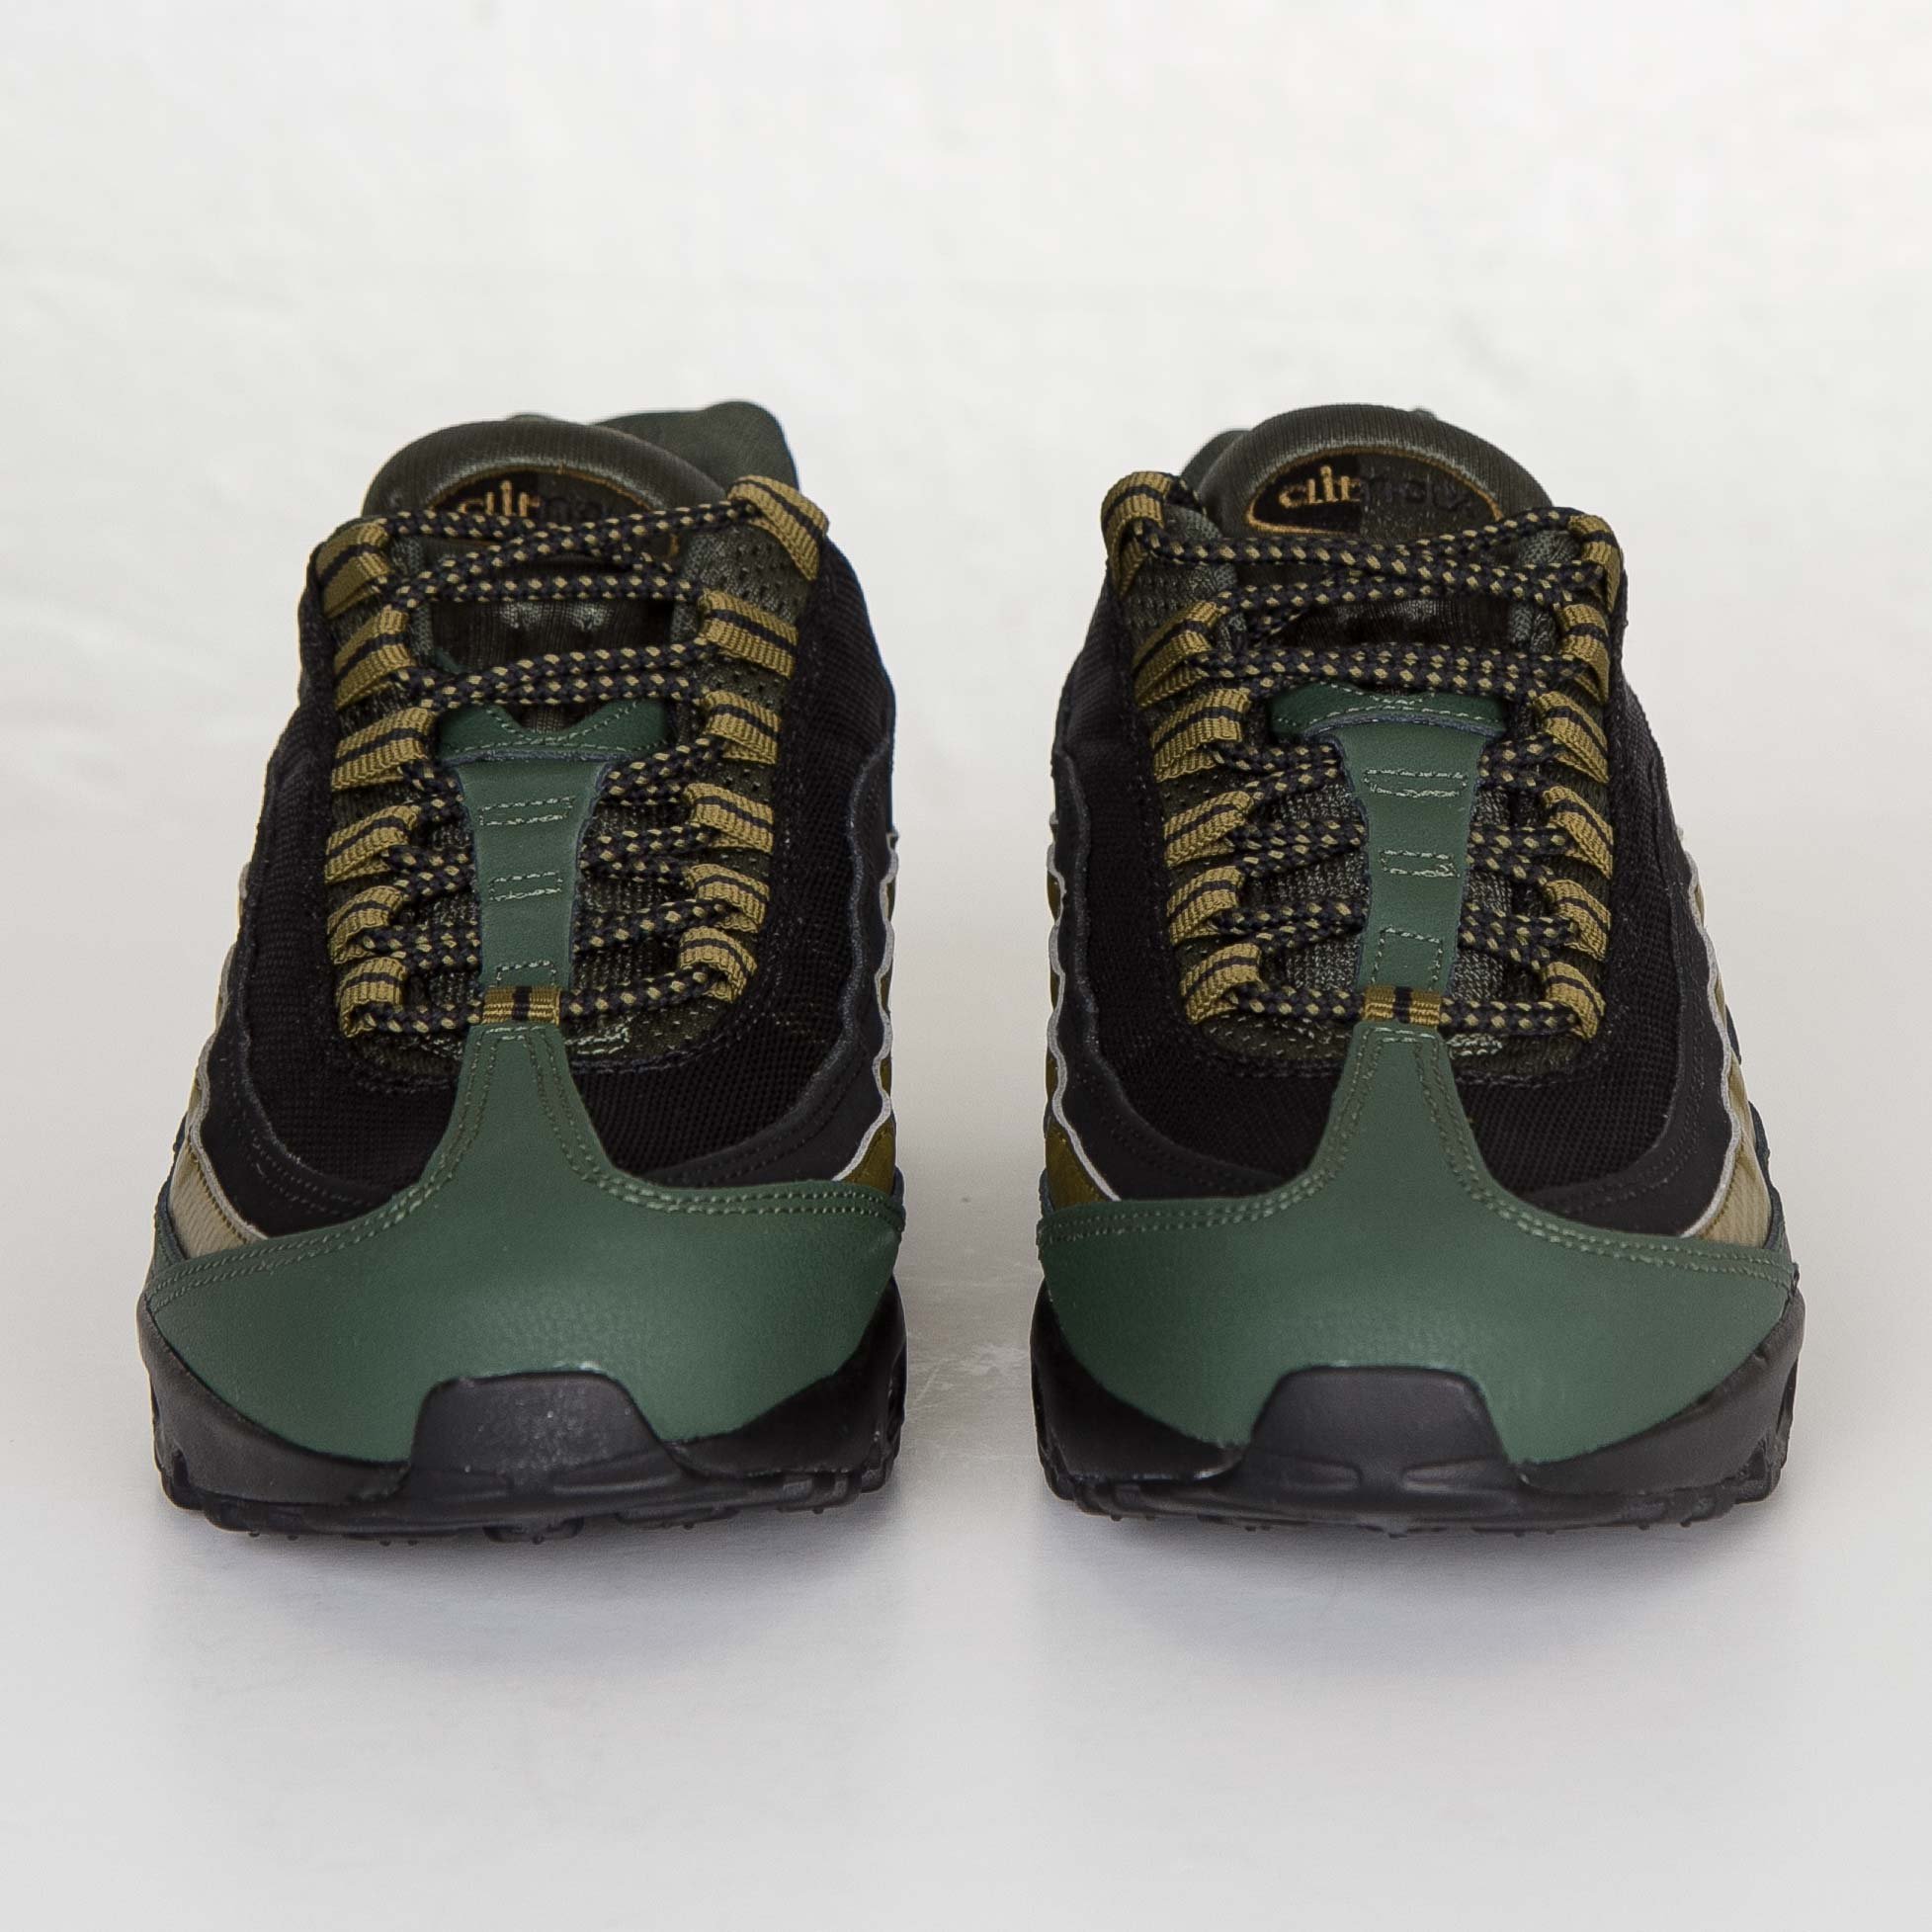 check out 37444 aa375 Nike Air Max 95 Essential - 749766-300 - Sneakersnstuff   sneakers    streetwear online since 1999